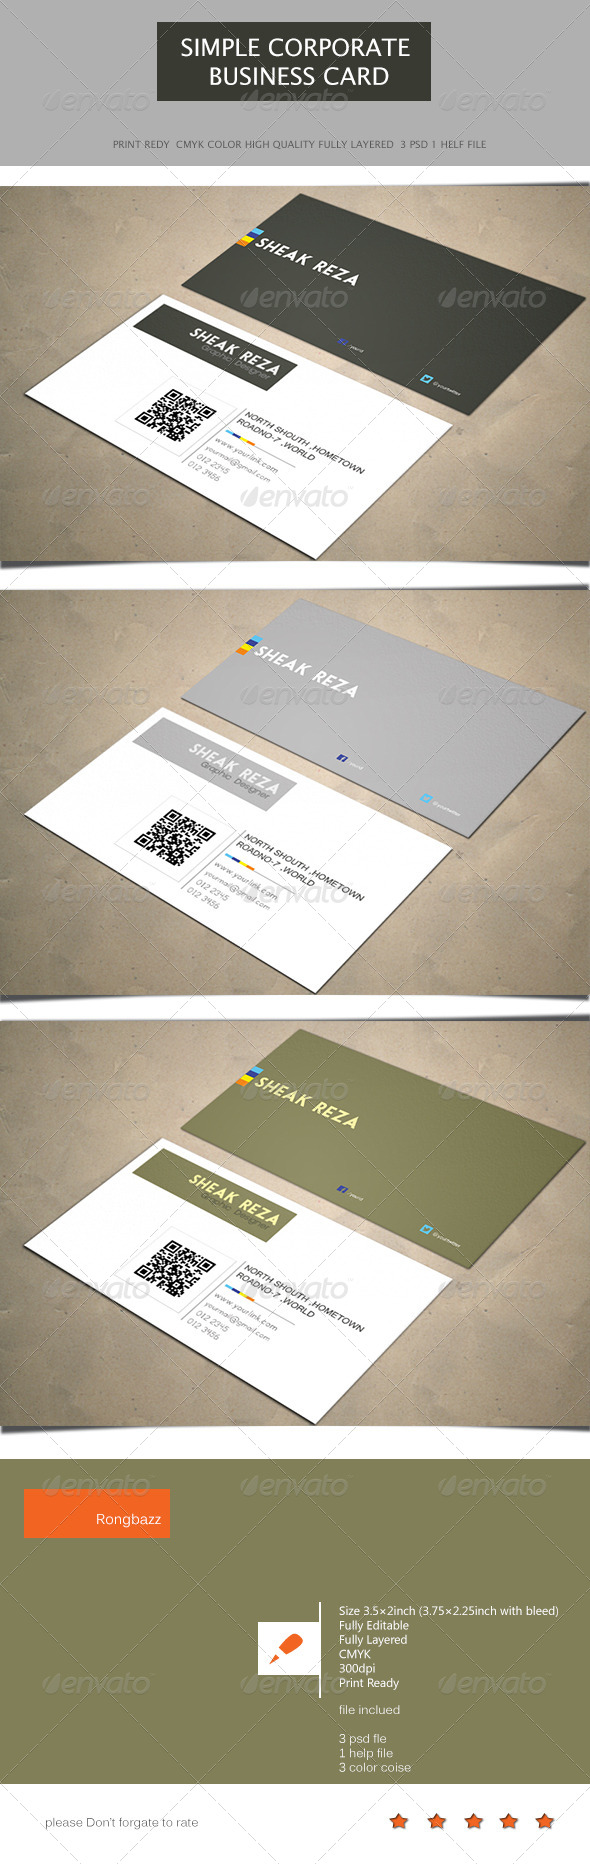 Simple Corporate Business Card 1.0 - Corporate Business Cards